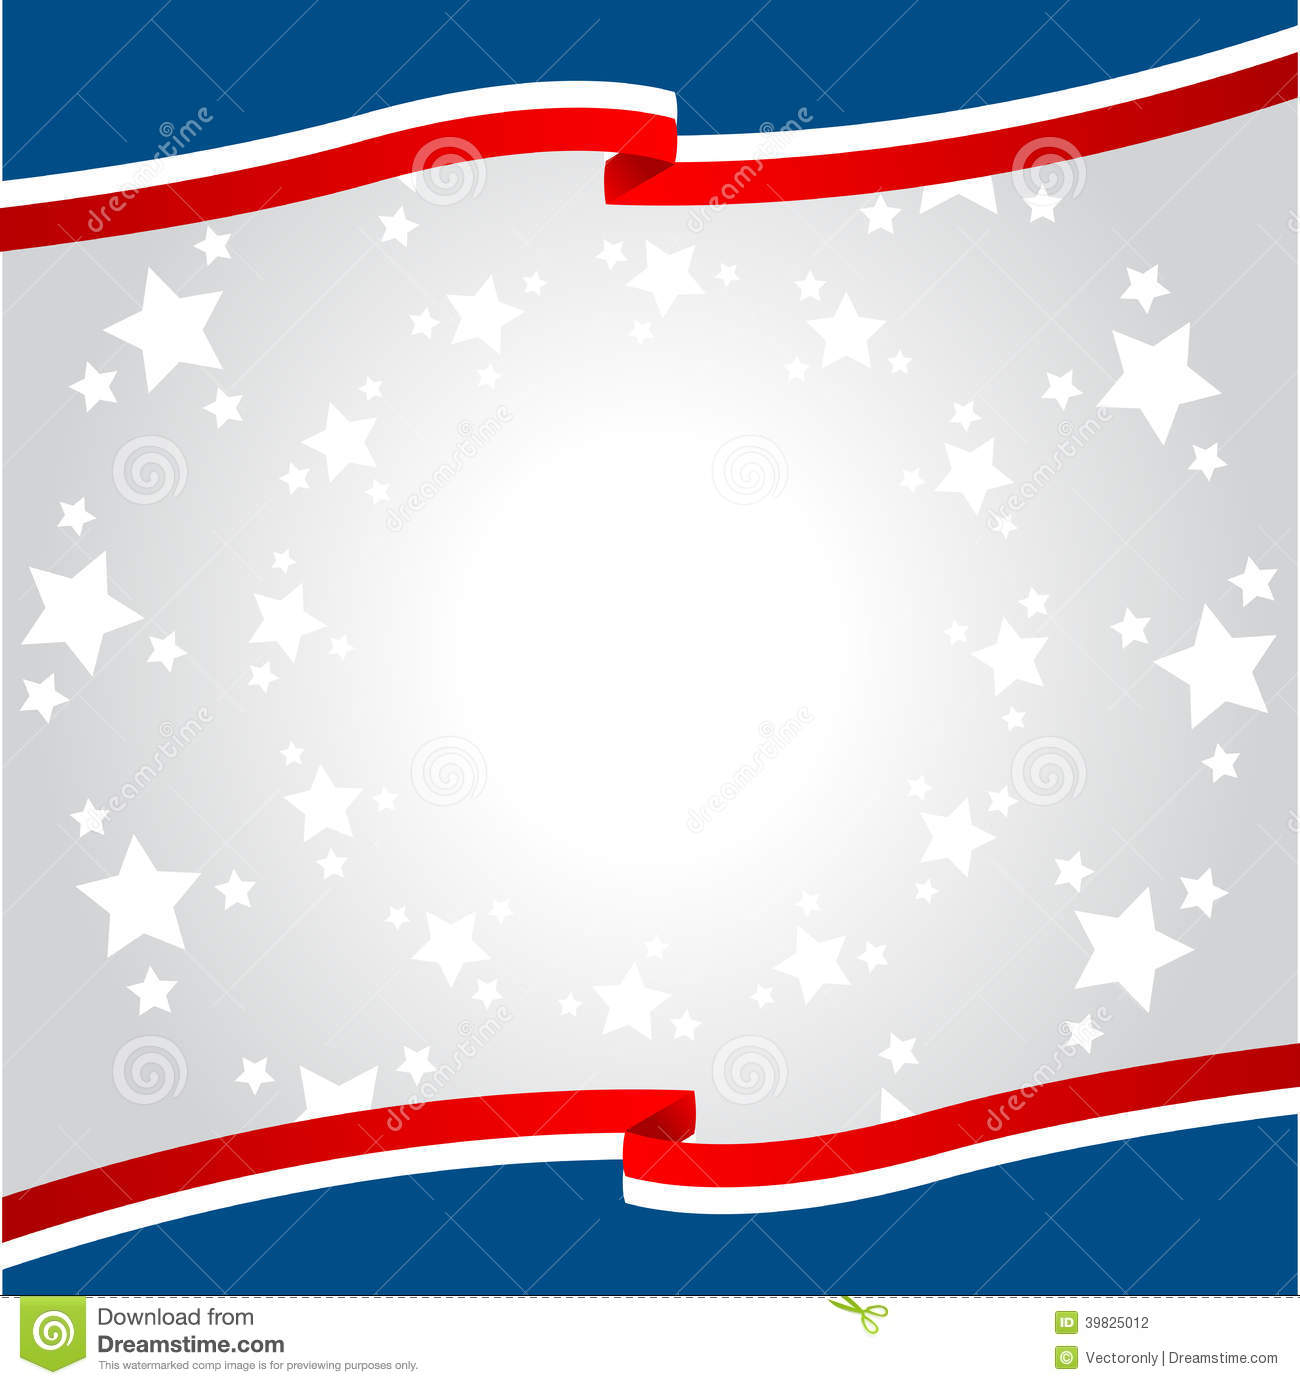 Patriotic Stock Vector  Image 39825012 Quality Backgrounds